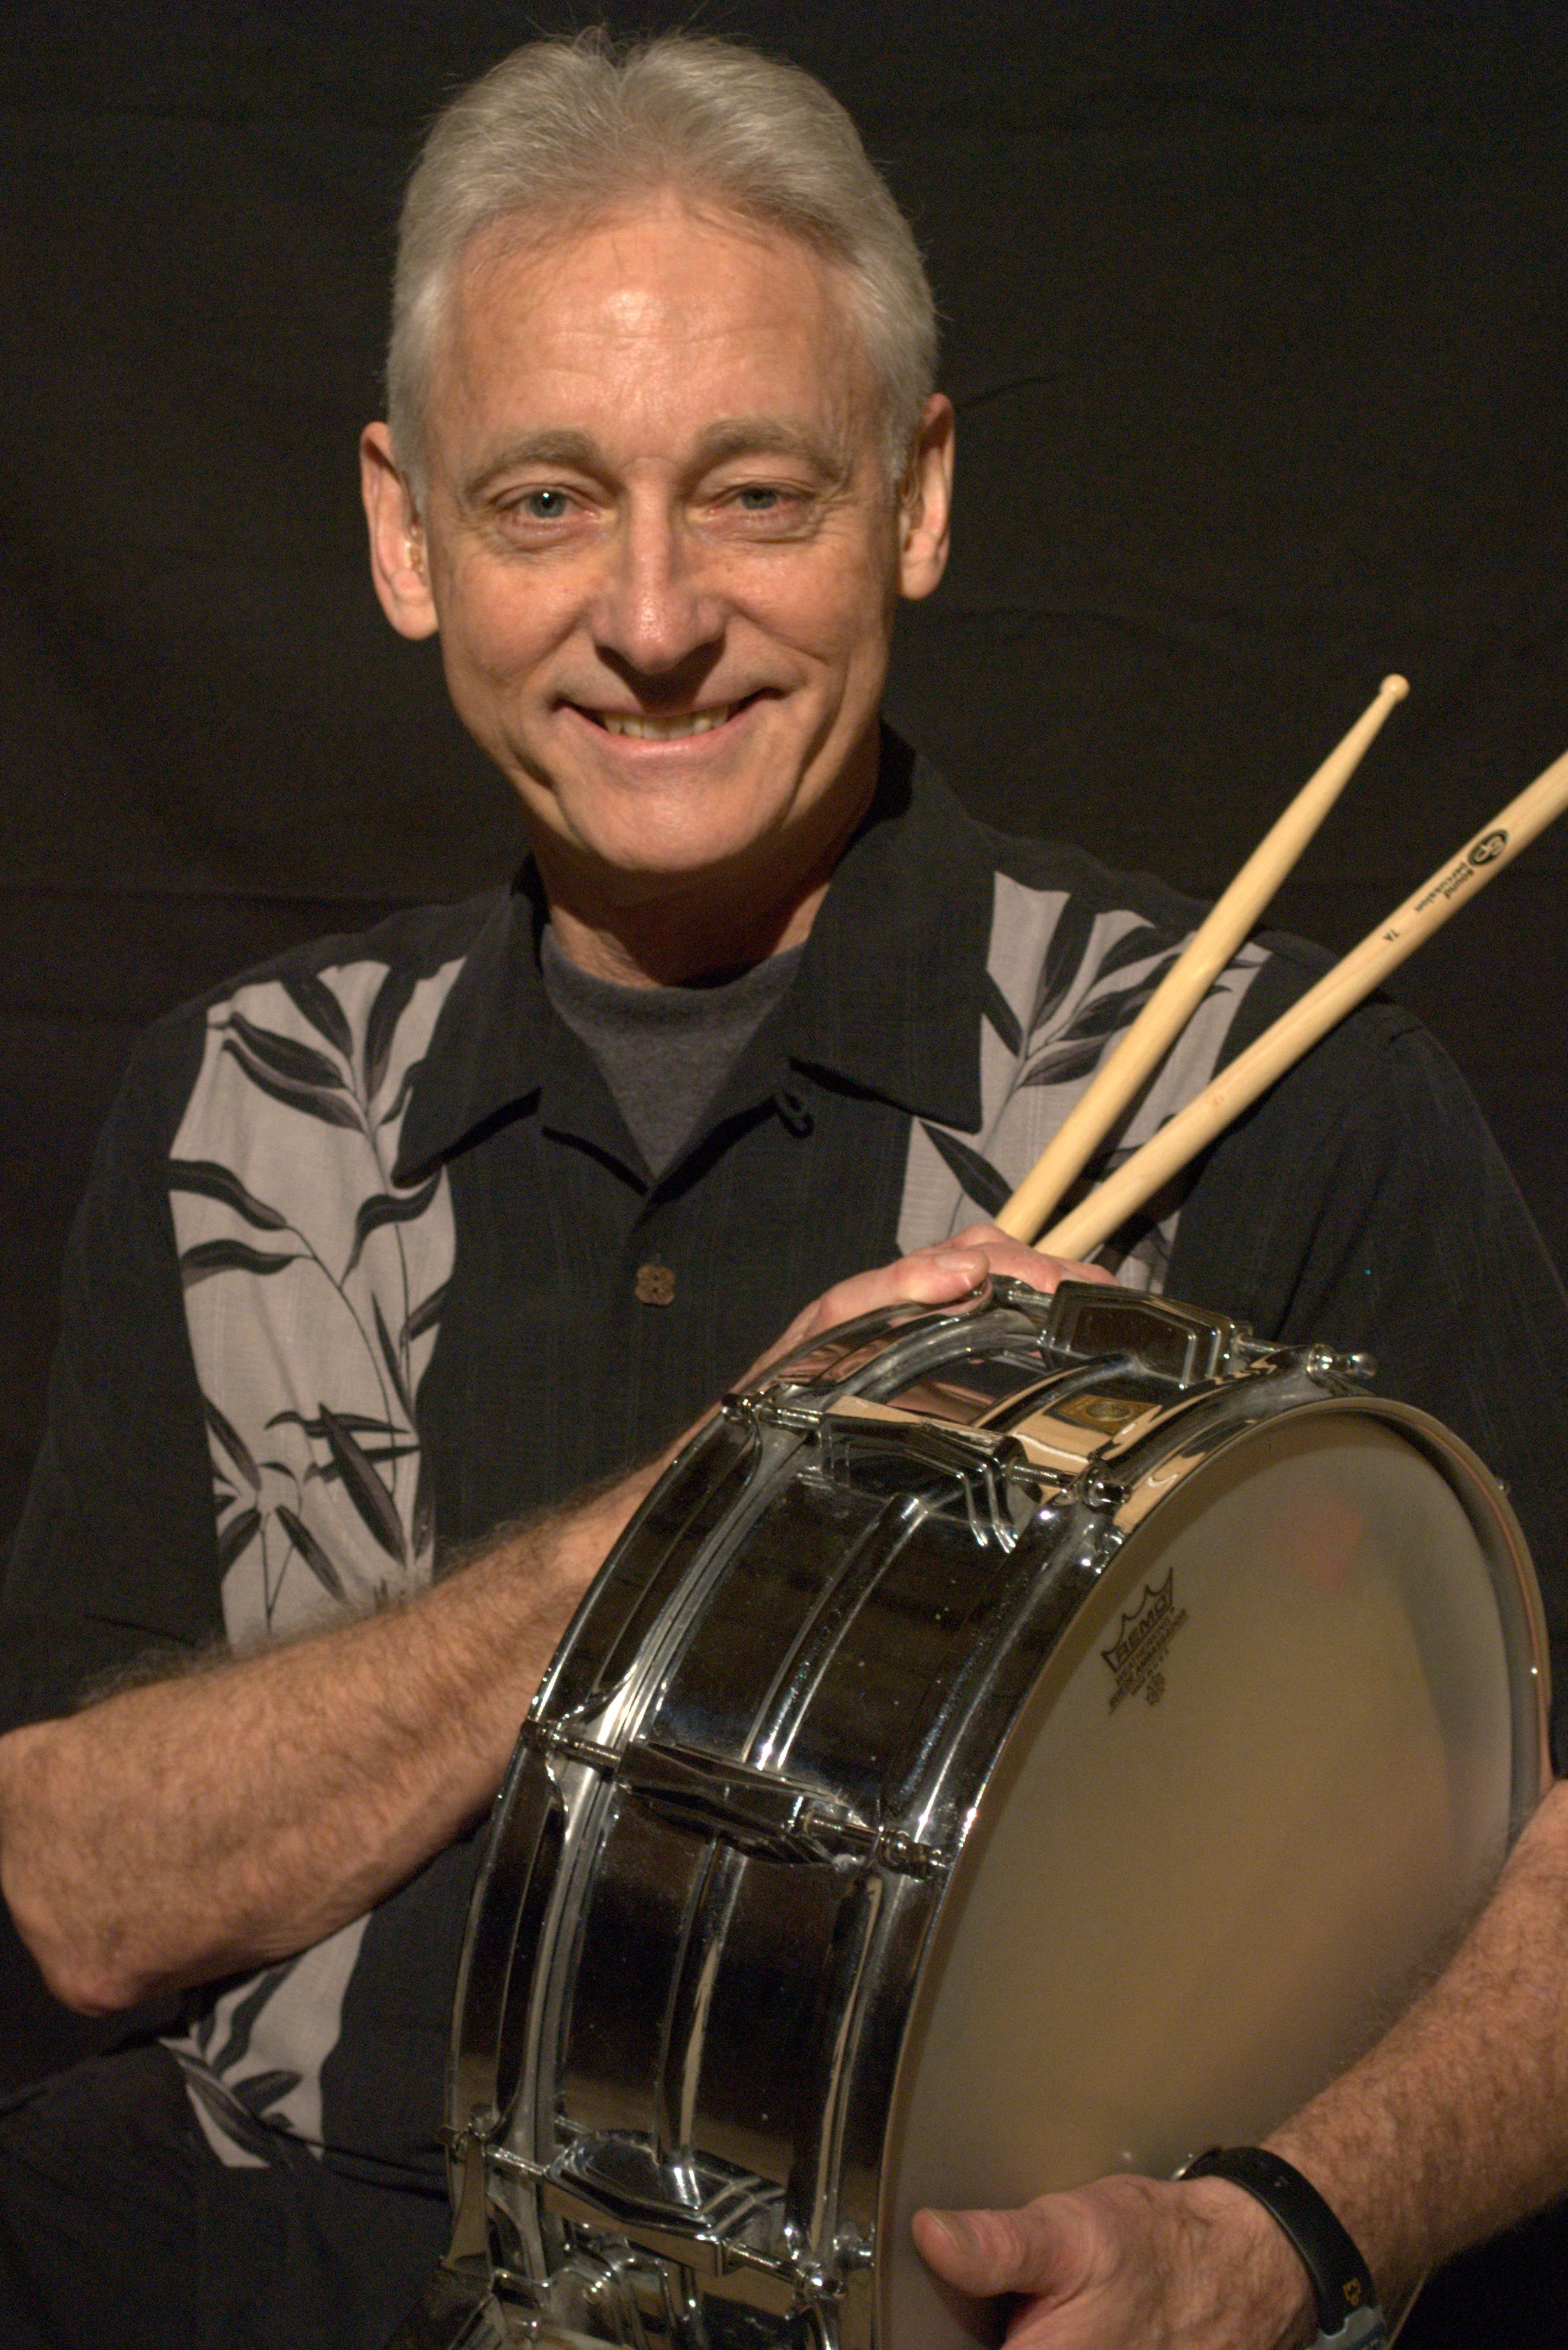 Jack Toker, drum teacher